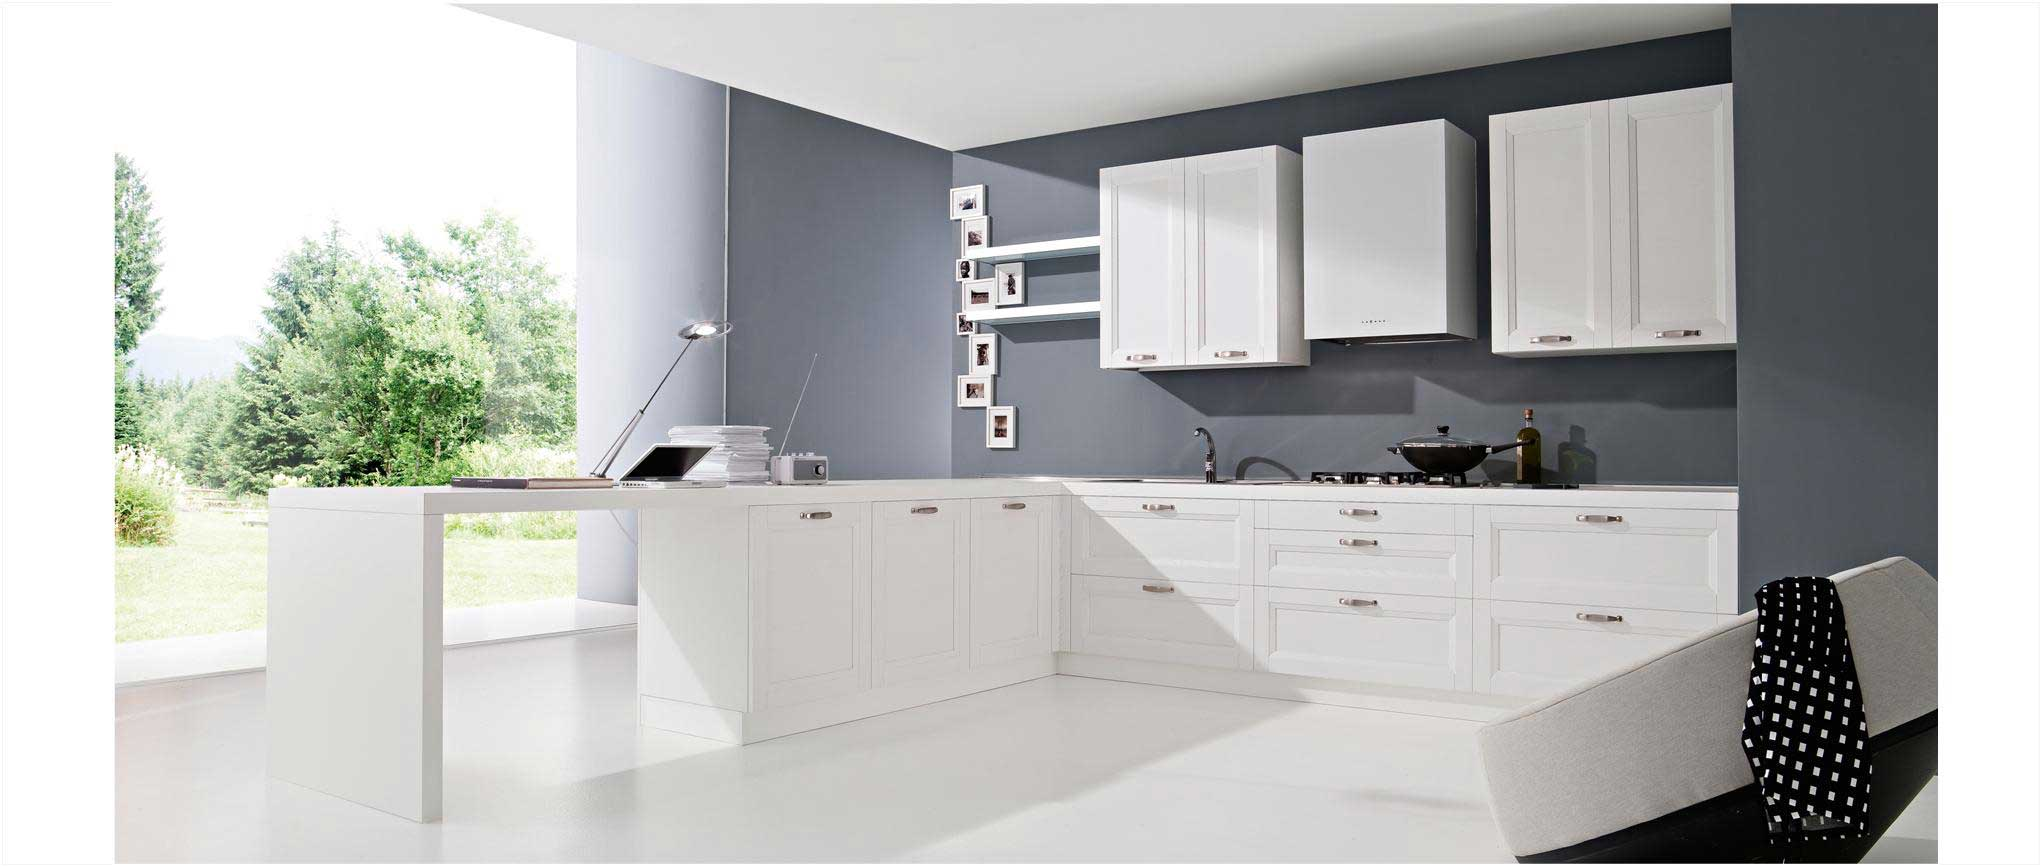 Country moderne   hd cuisines